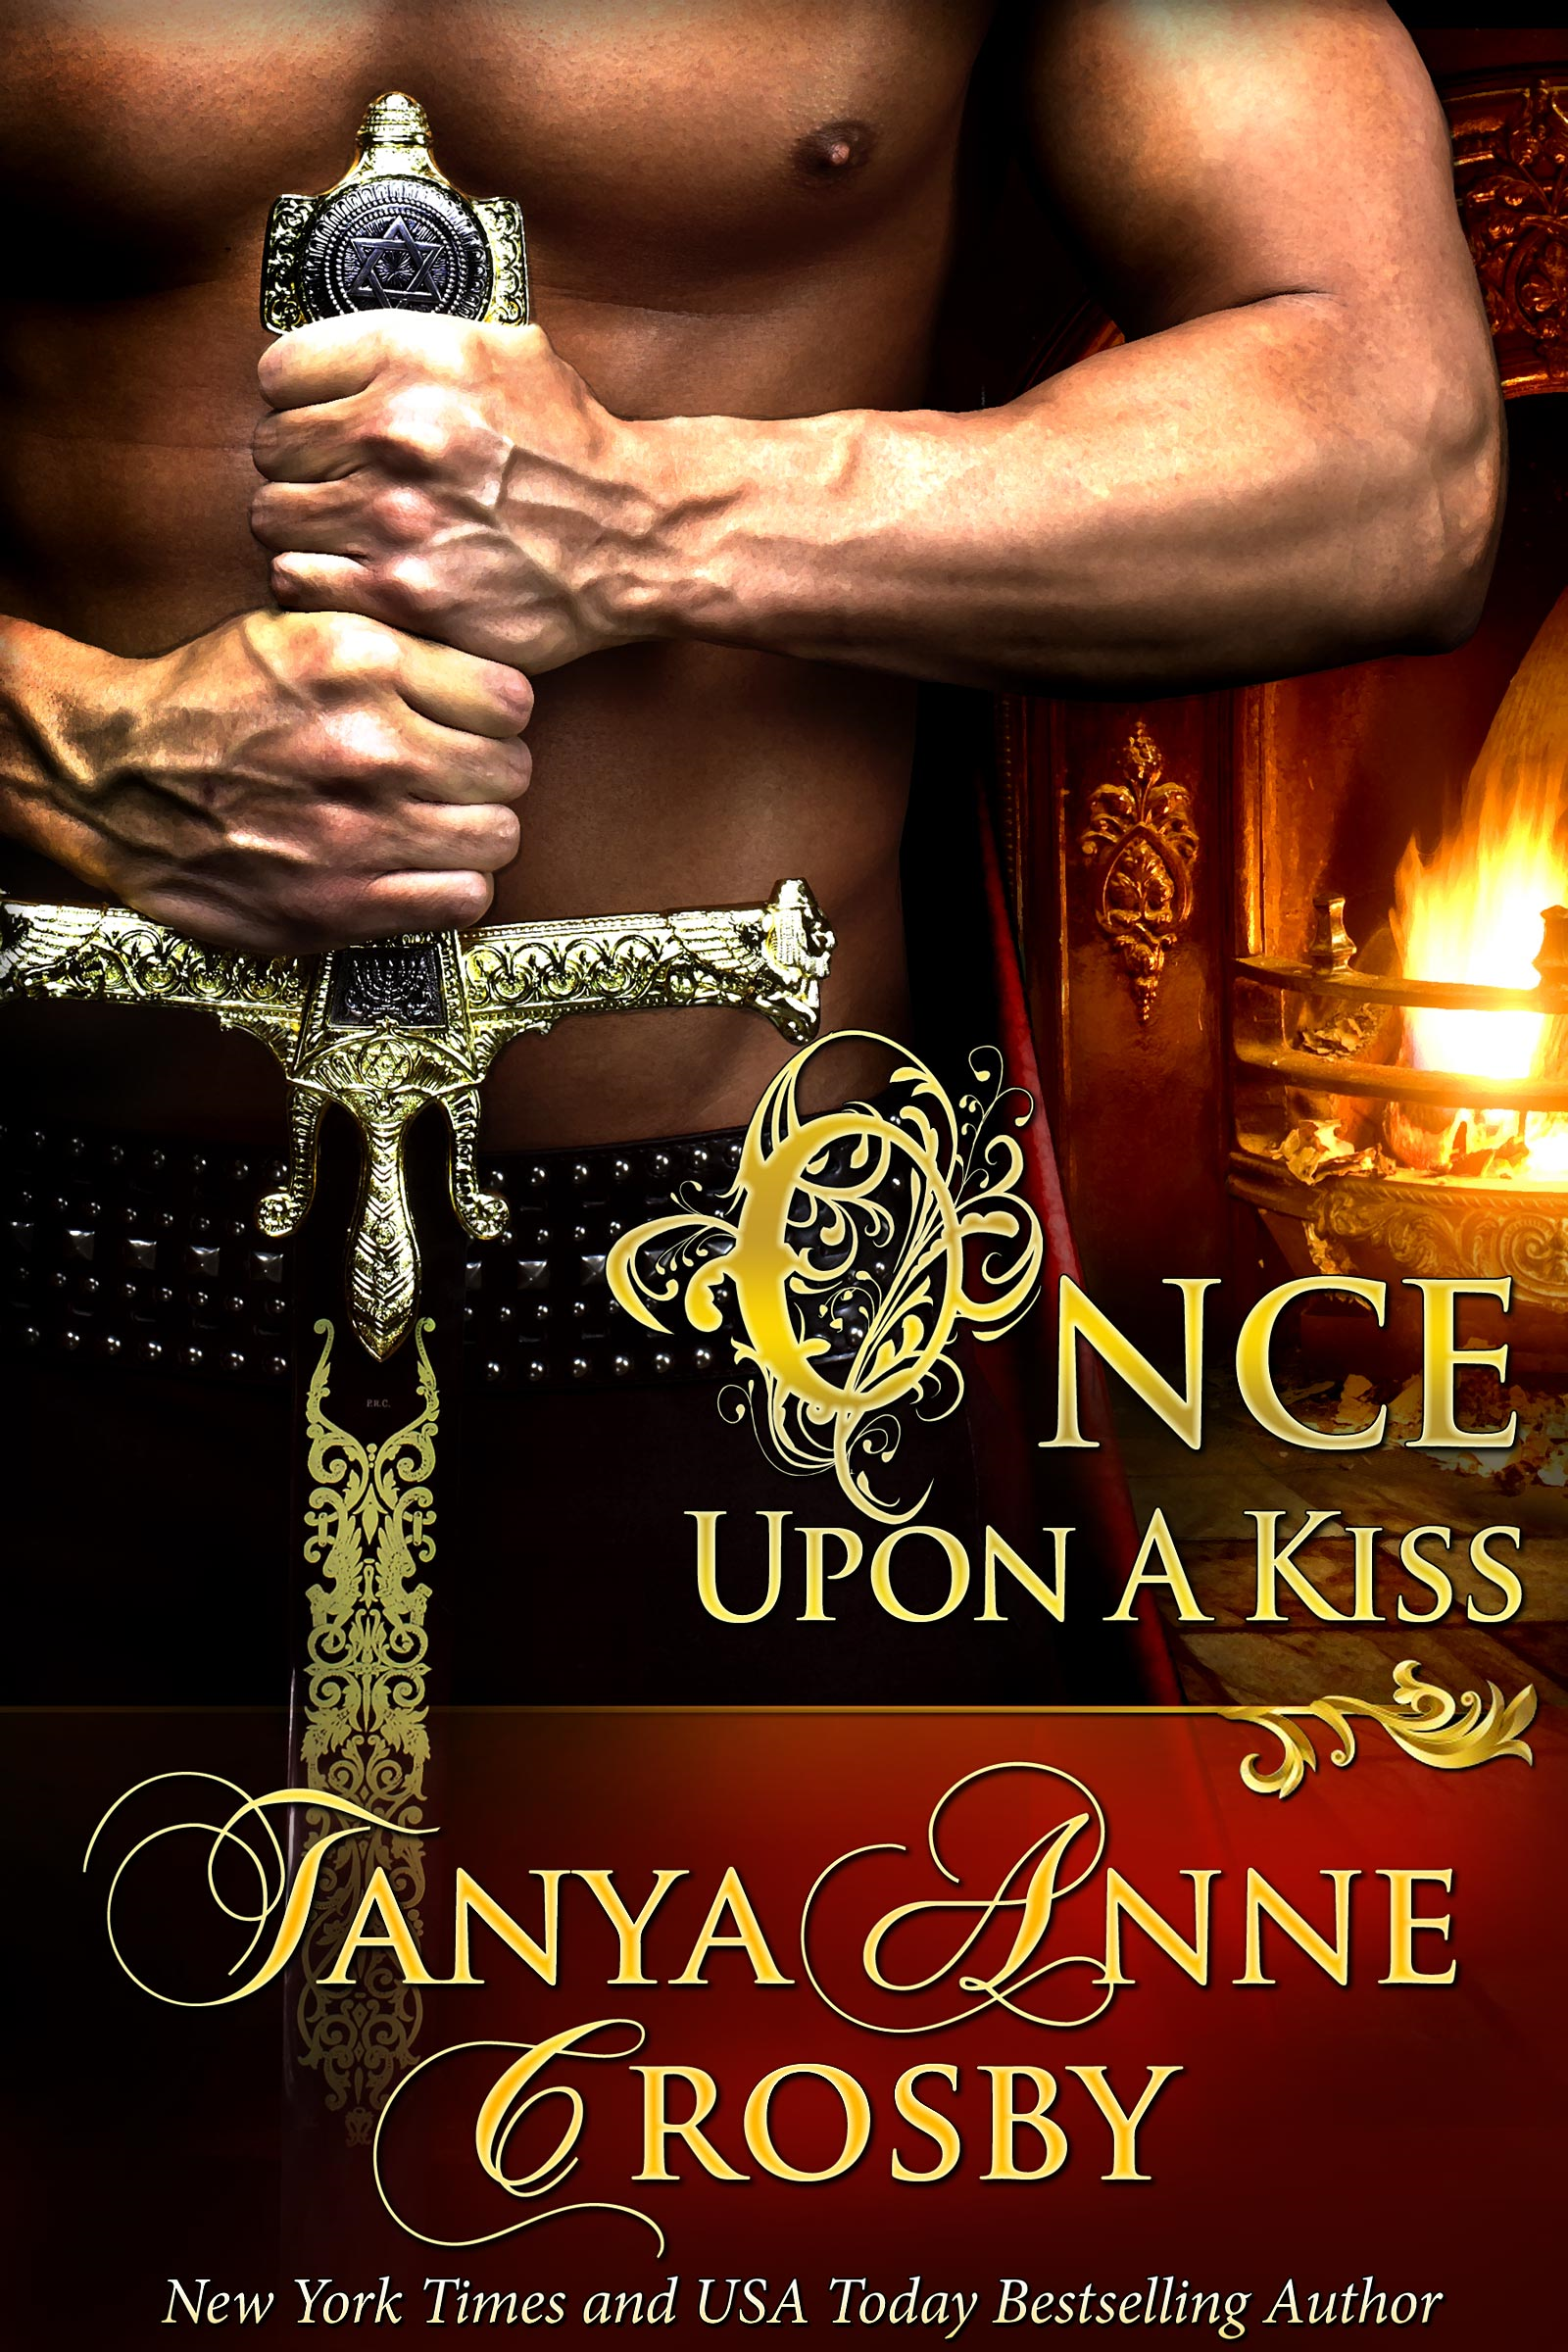 Once Upon a Kiss By: Tanya Anne Crosby